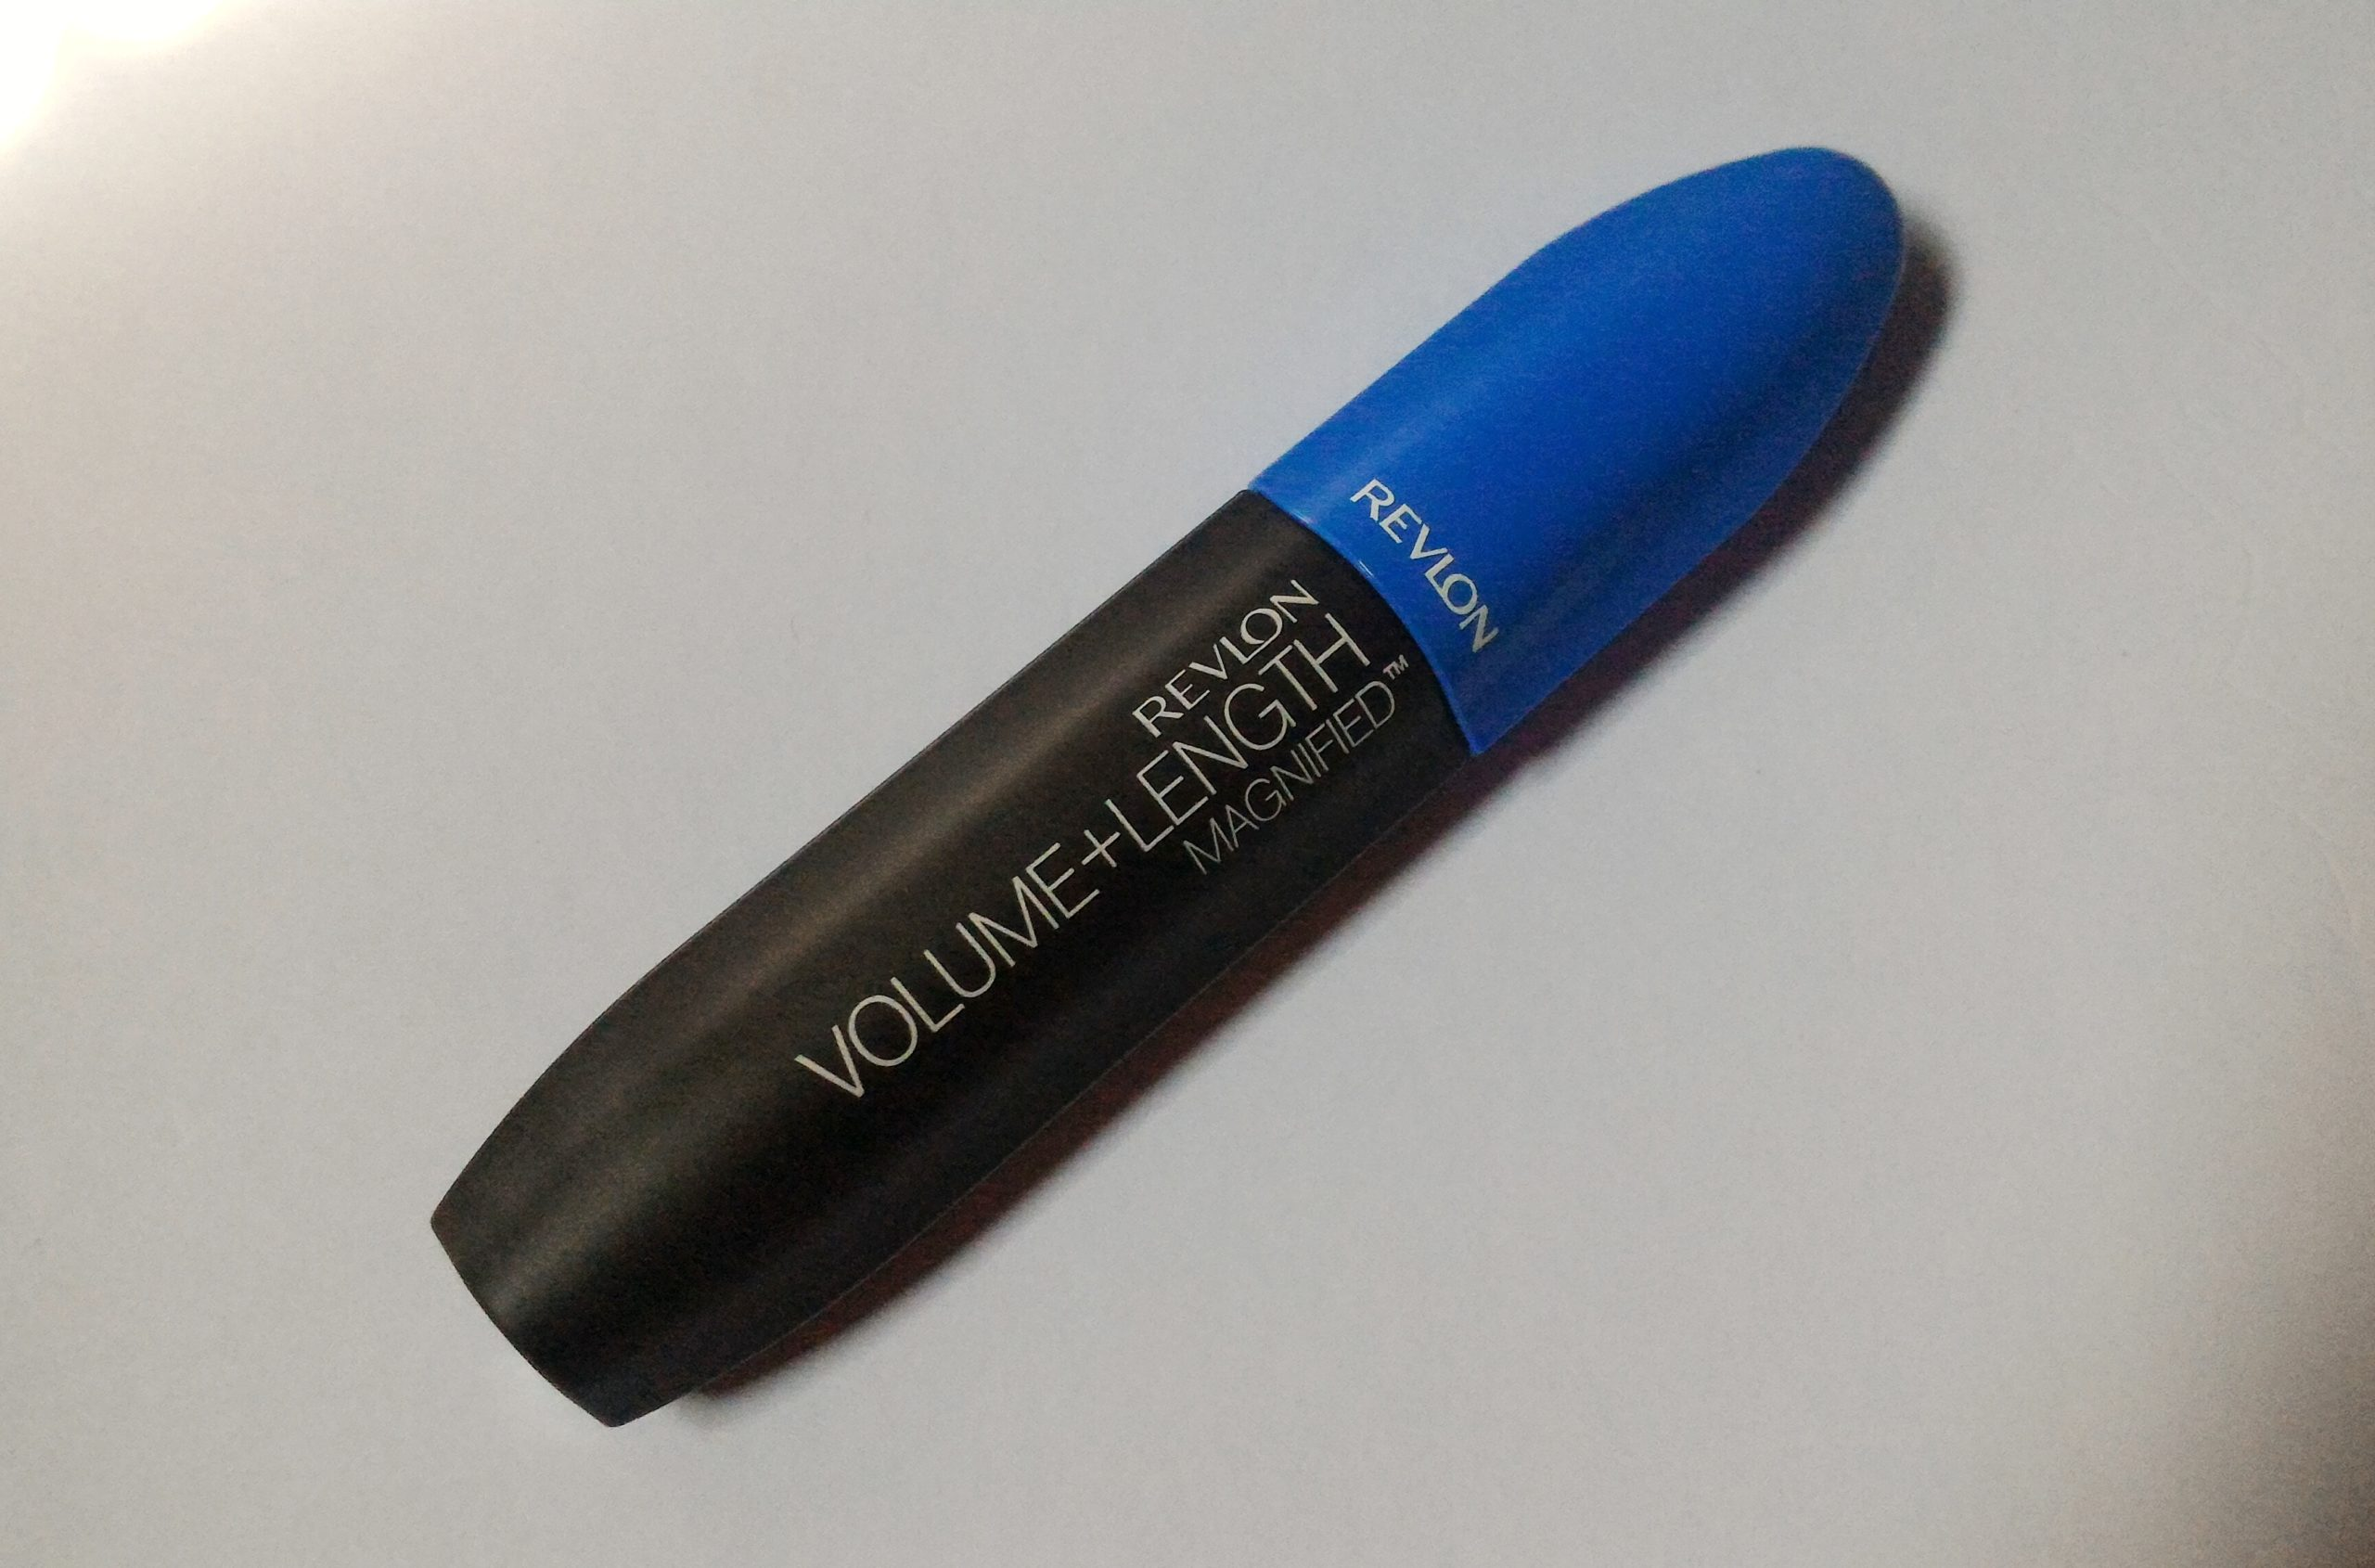 Revlon Volume & Length Magnified Mascara